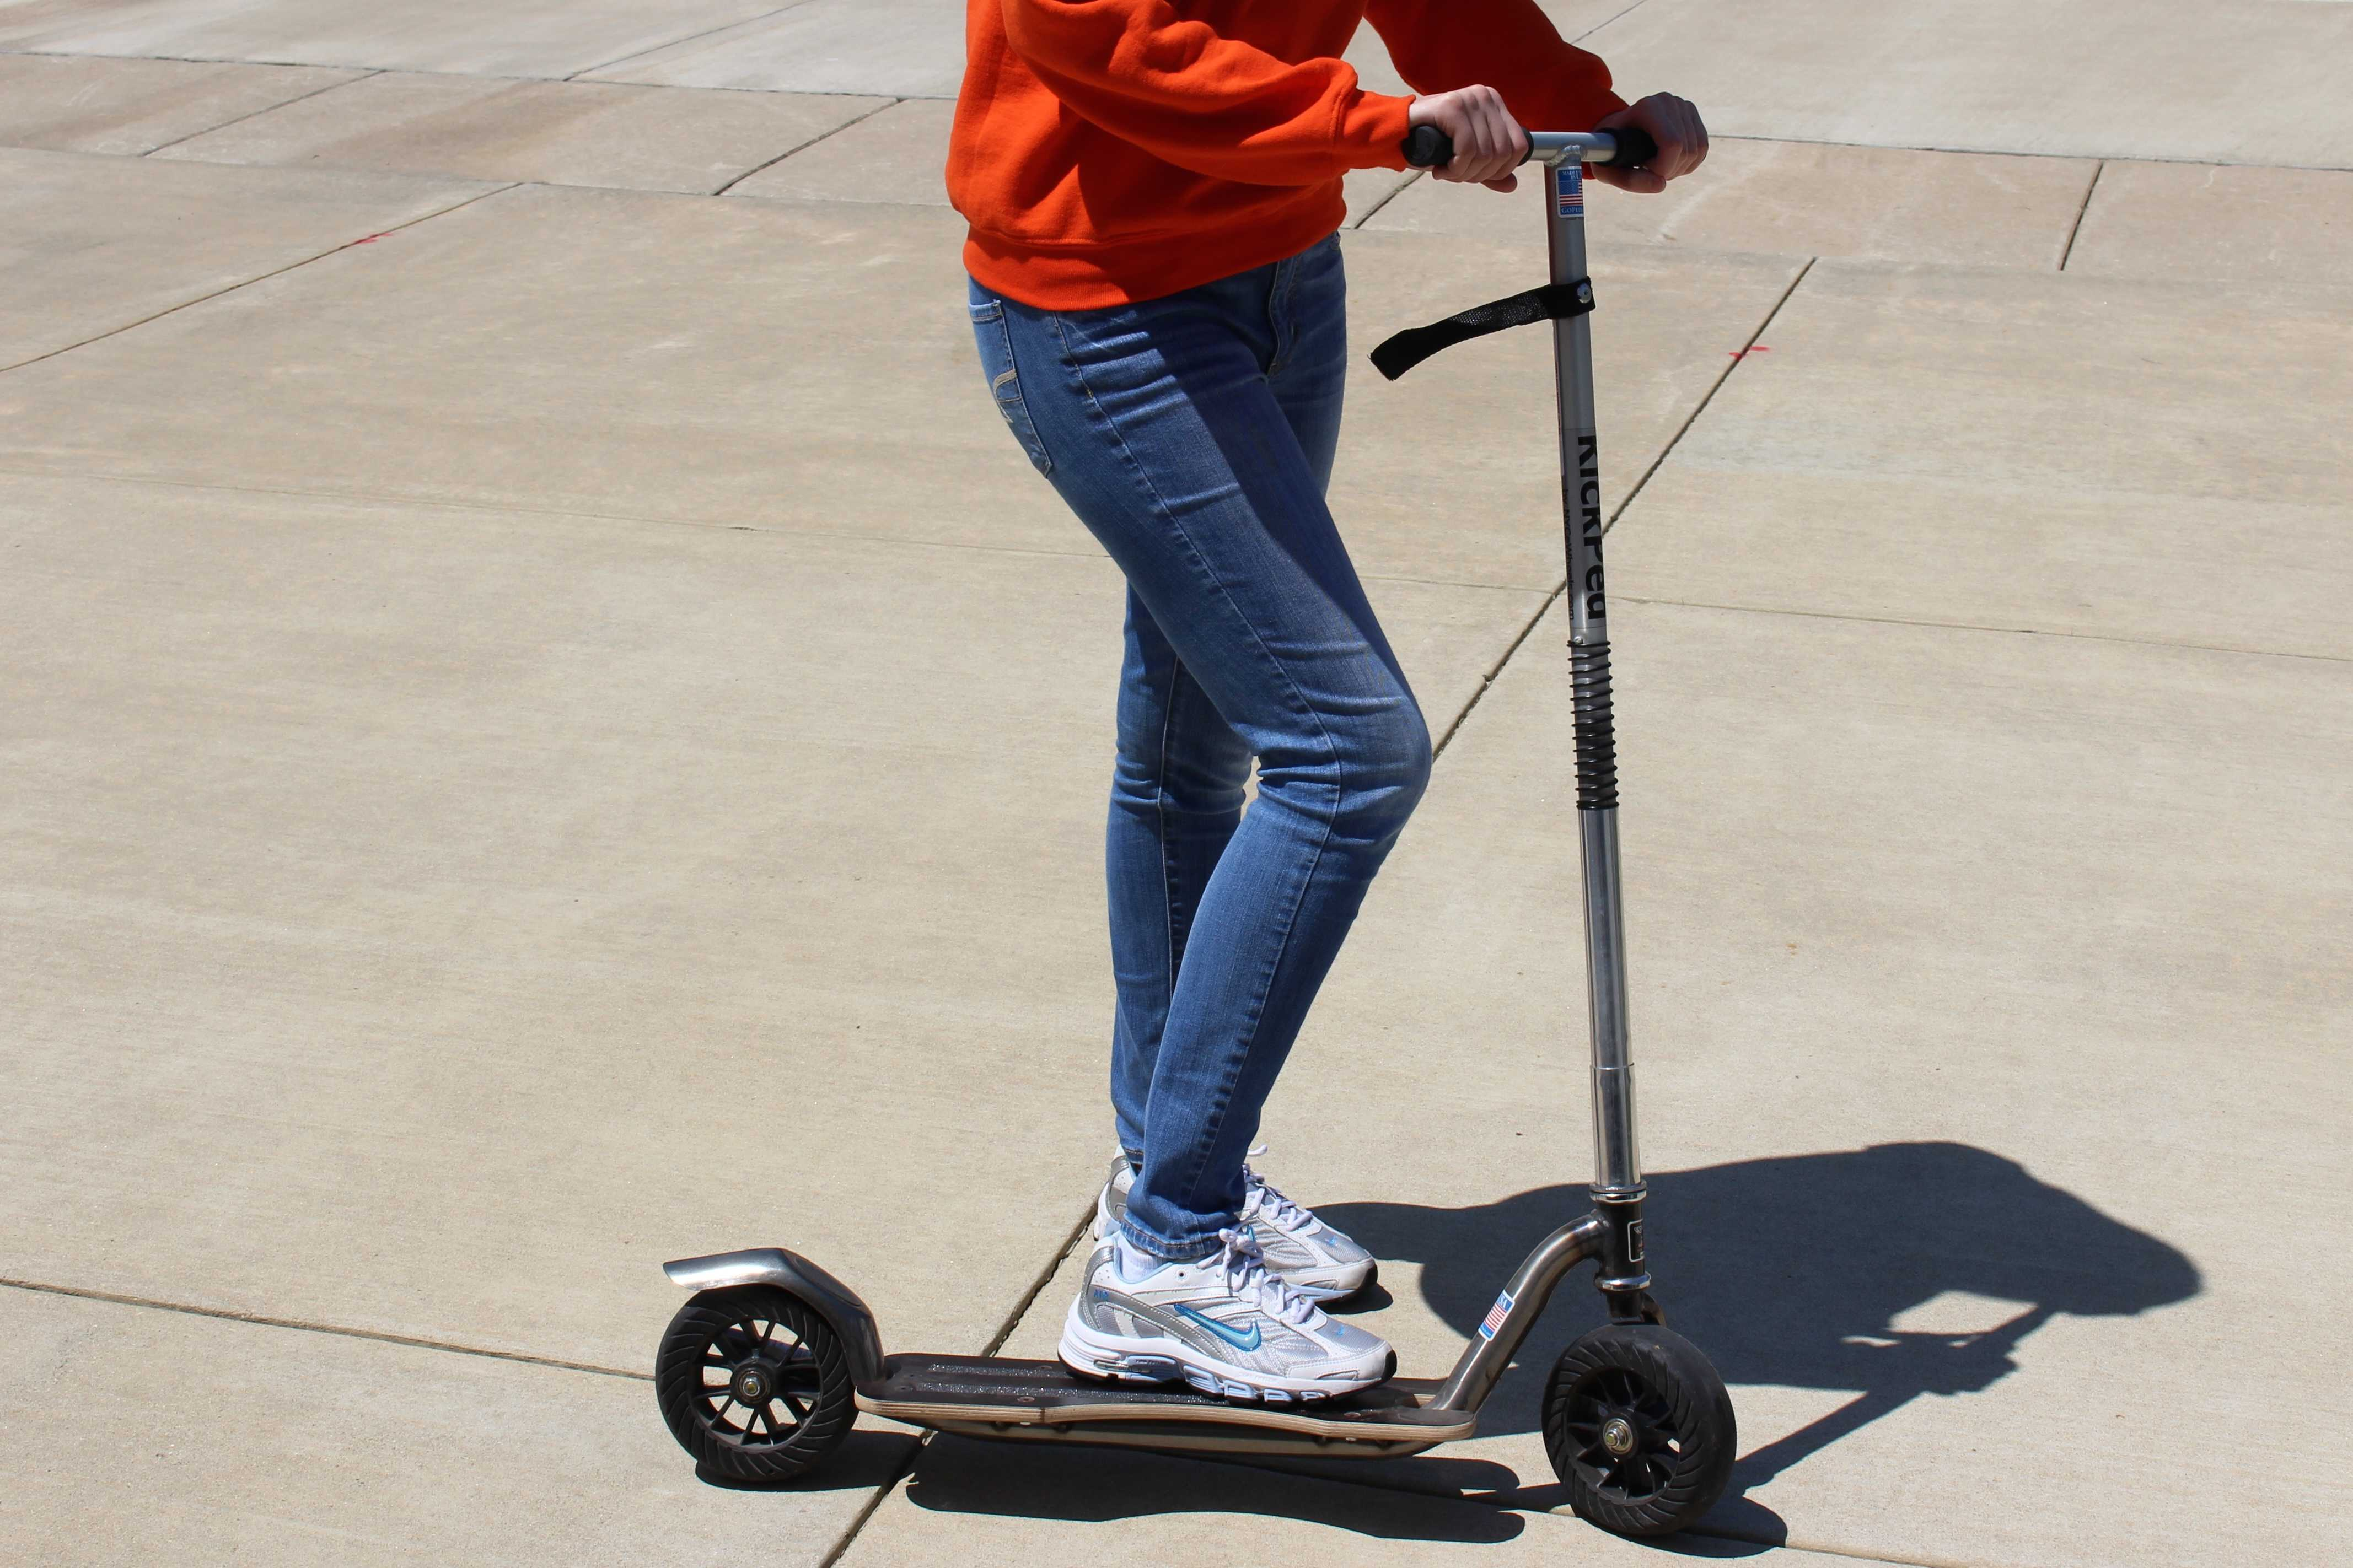 A scooter is one of the many ways students can get around campus.